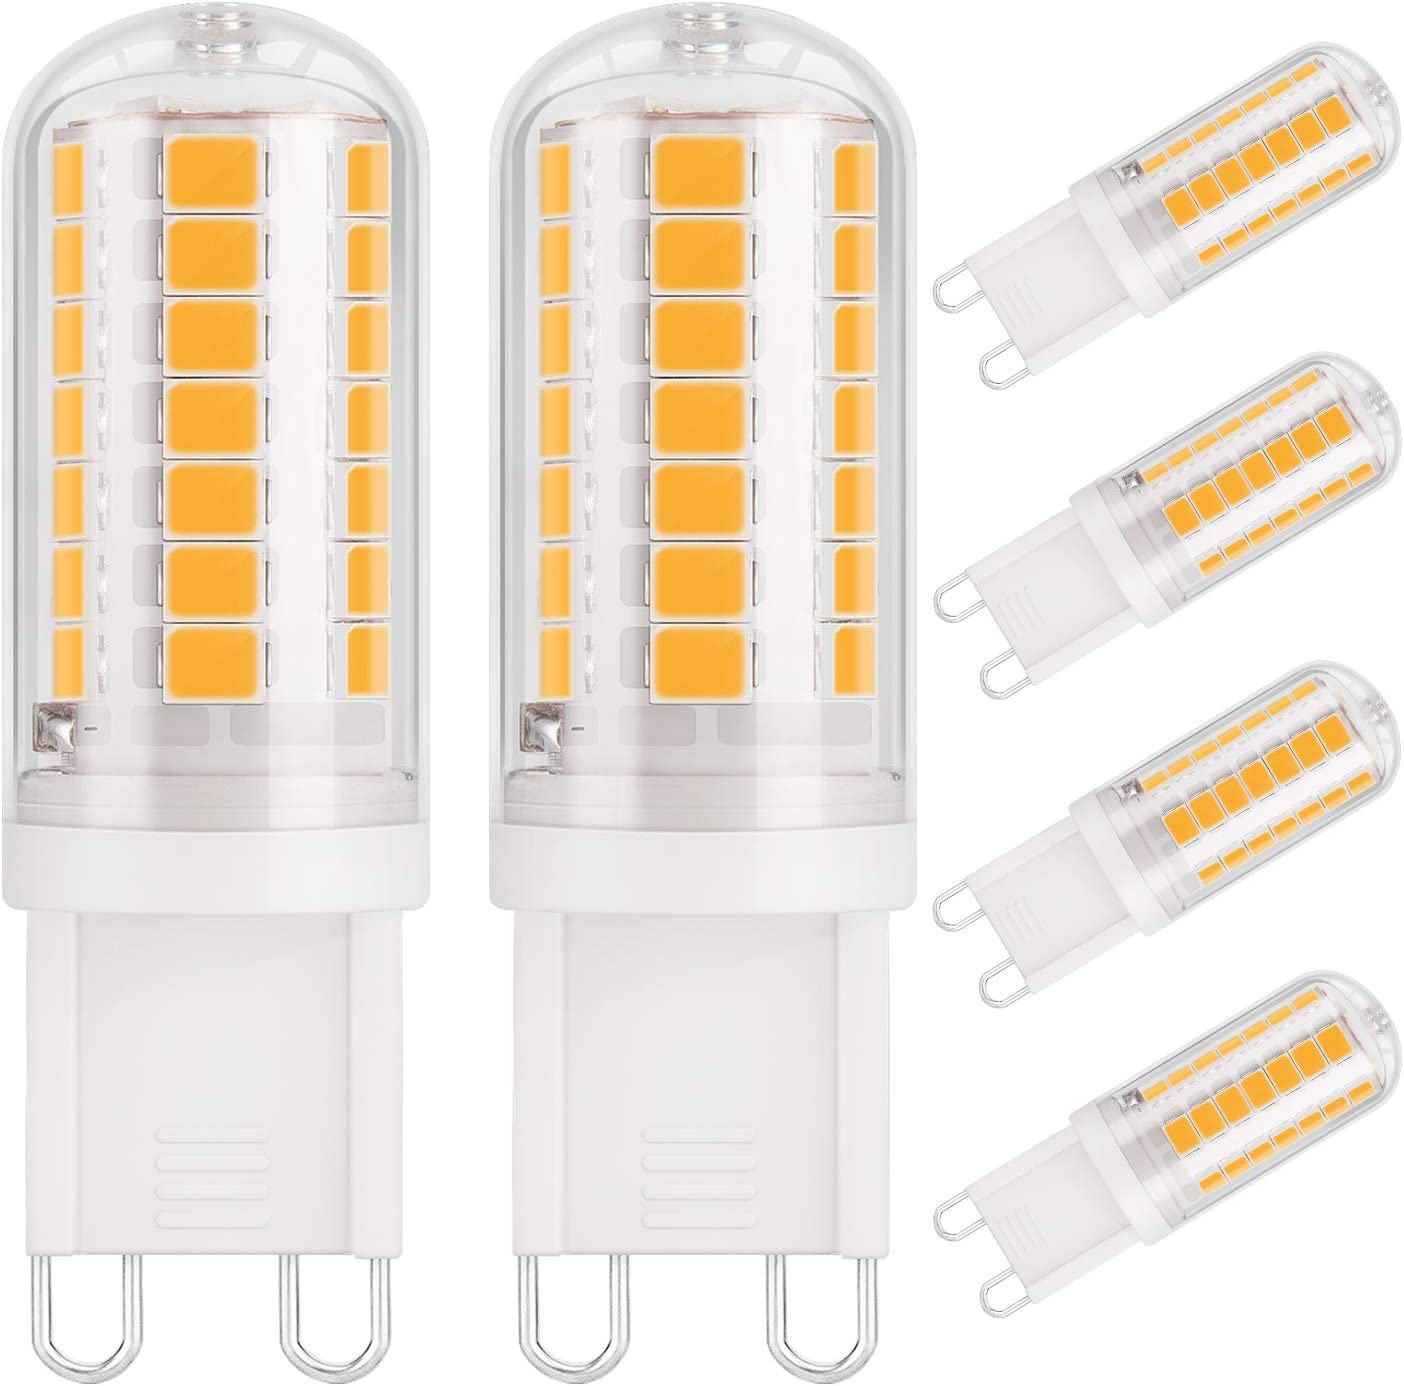 DiCUNO G12 LED Bulb, 12W 12W Halogen Equivalent, Warm White 12K, Bi Pin  Ceramic Base 1230LM 12V, Non Dimmable for Chandelier Pendant Ceiling ...